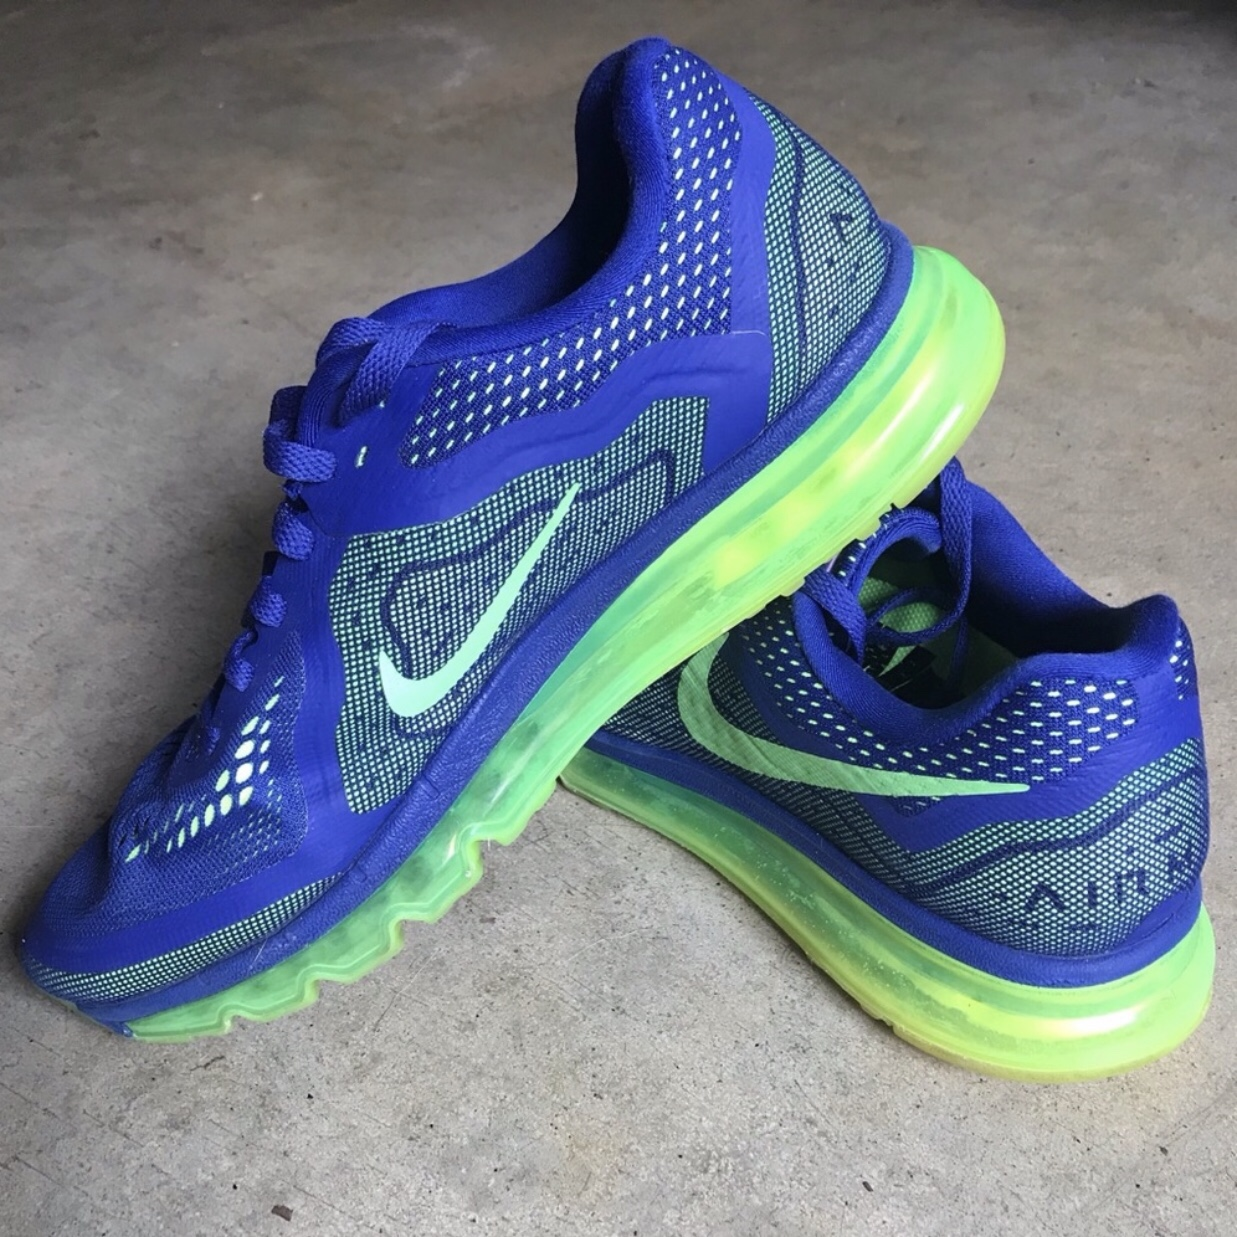 Nike Air Max 2014 Deep Royal Blue Electric Depop